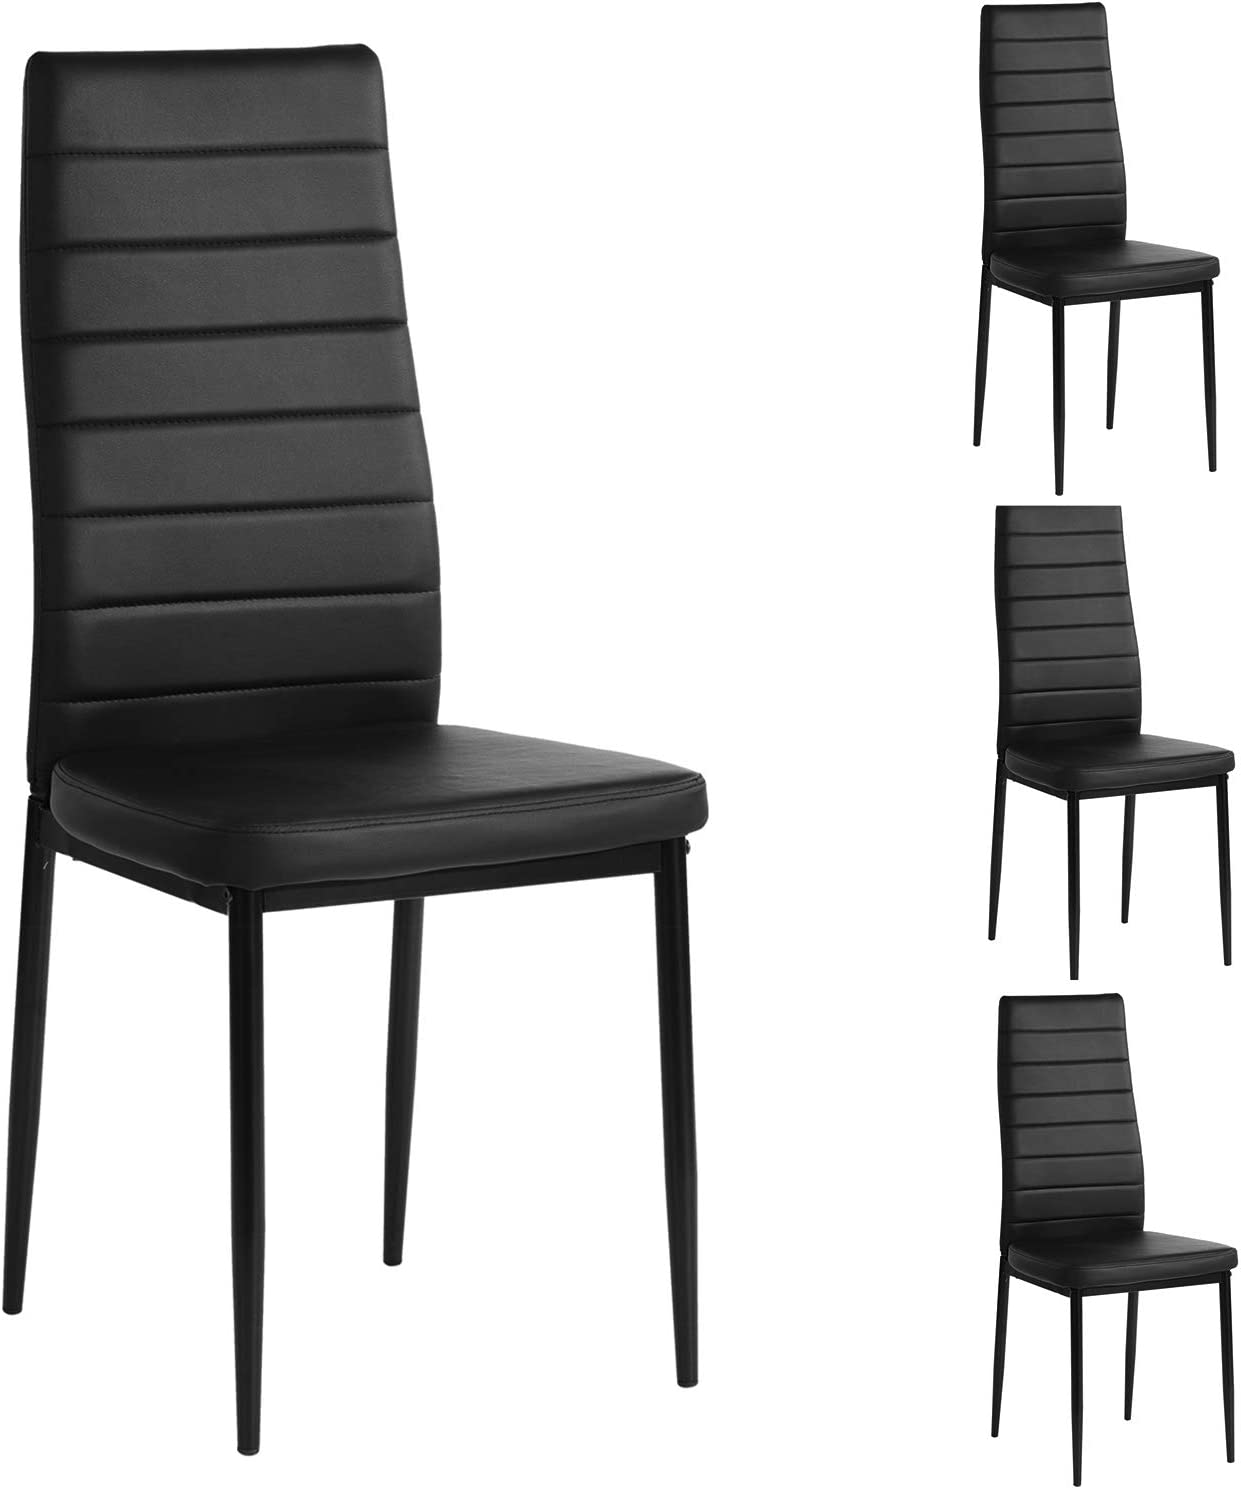 Amazon Com Aingoo Pu Leather Dining Chairs Set Of 4 Modern Kitchen Chair With Ergonomic Curved Back And Steel Frame Black Home Kitchen